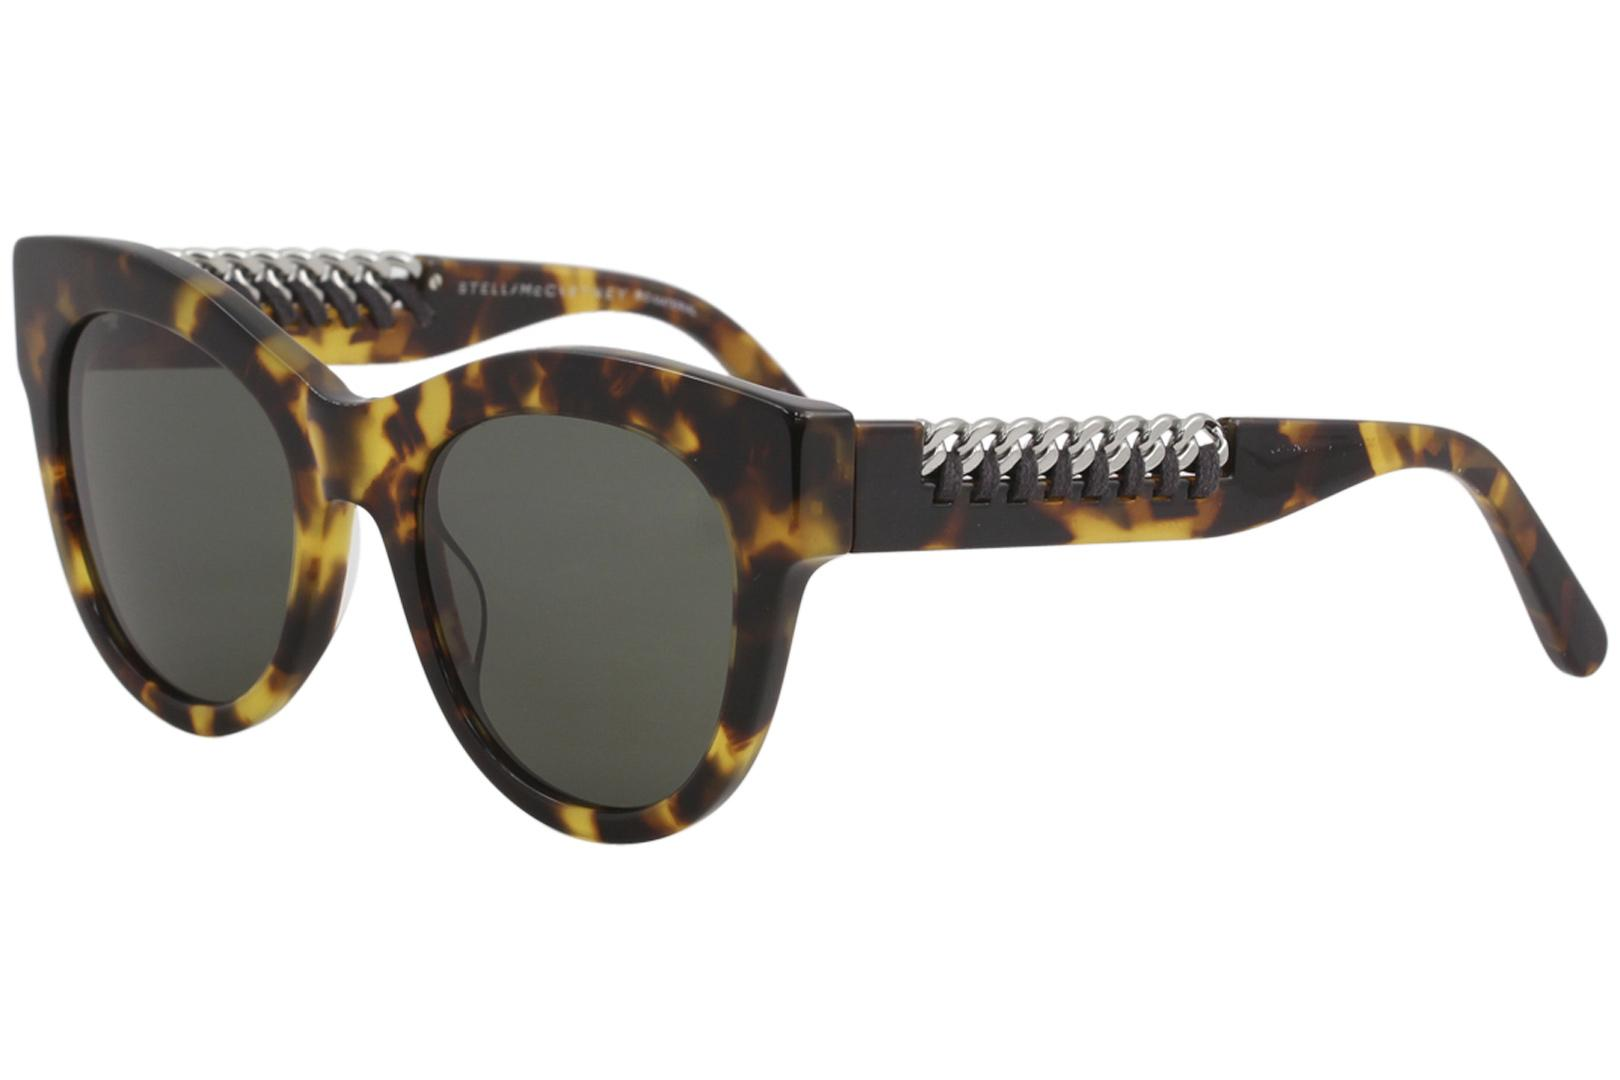 Image of Stella McCartney SC0064S SC/0064/S Havana/Ruthenium Cat Eye Sunglasses 51mm - Havana Ruthenium/Green   003 - Lens 51 Bridge 21 Temple 140mm